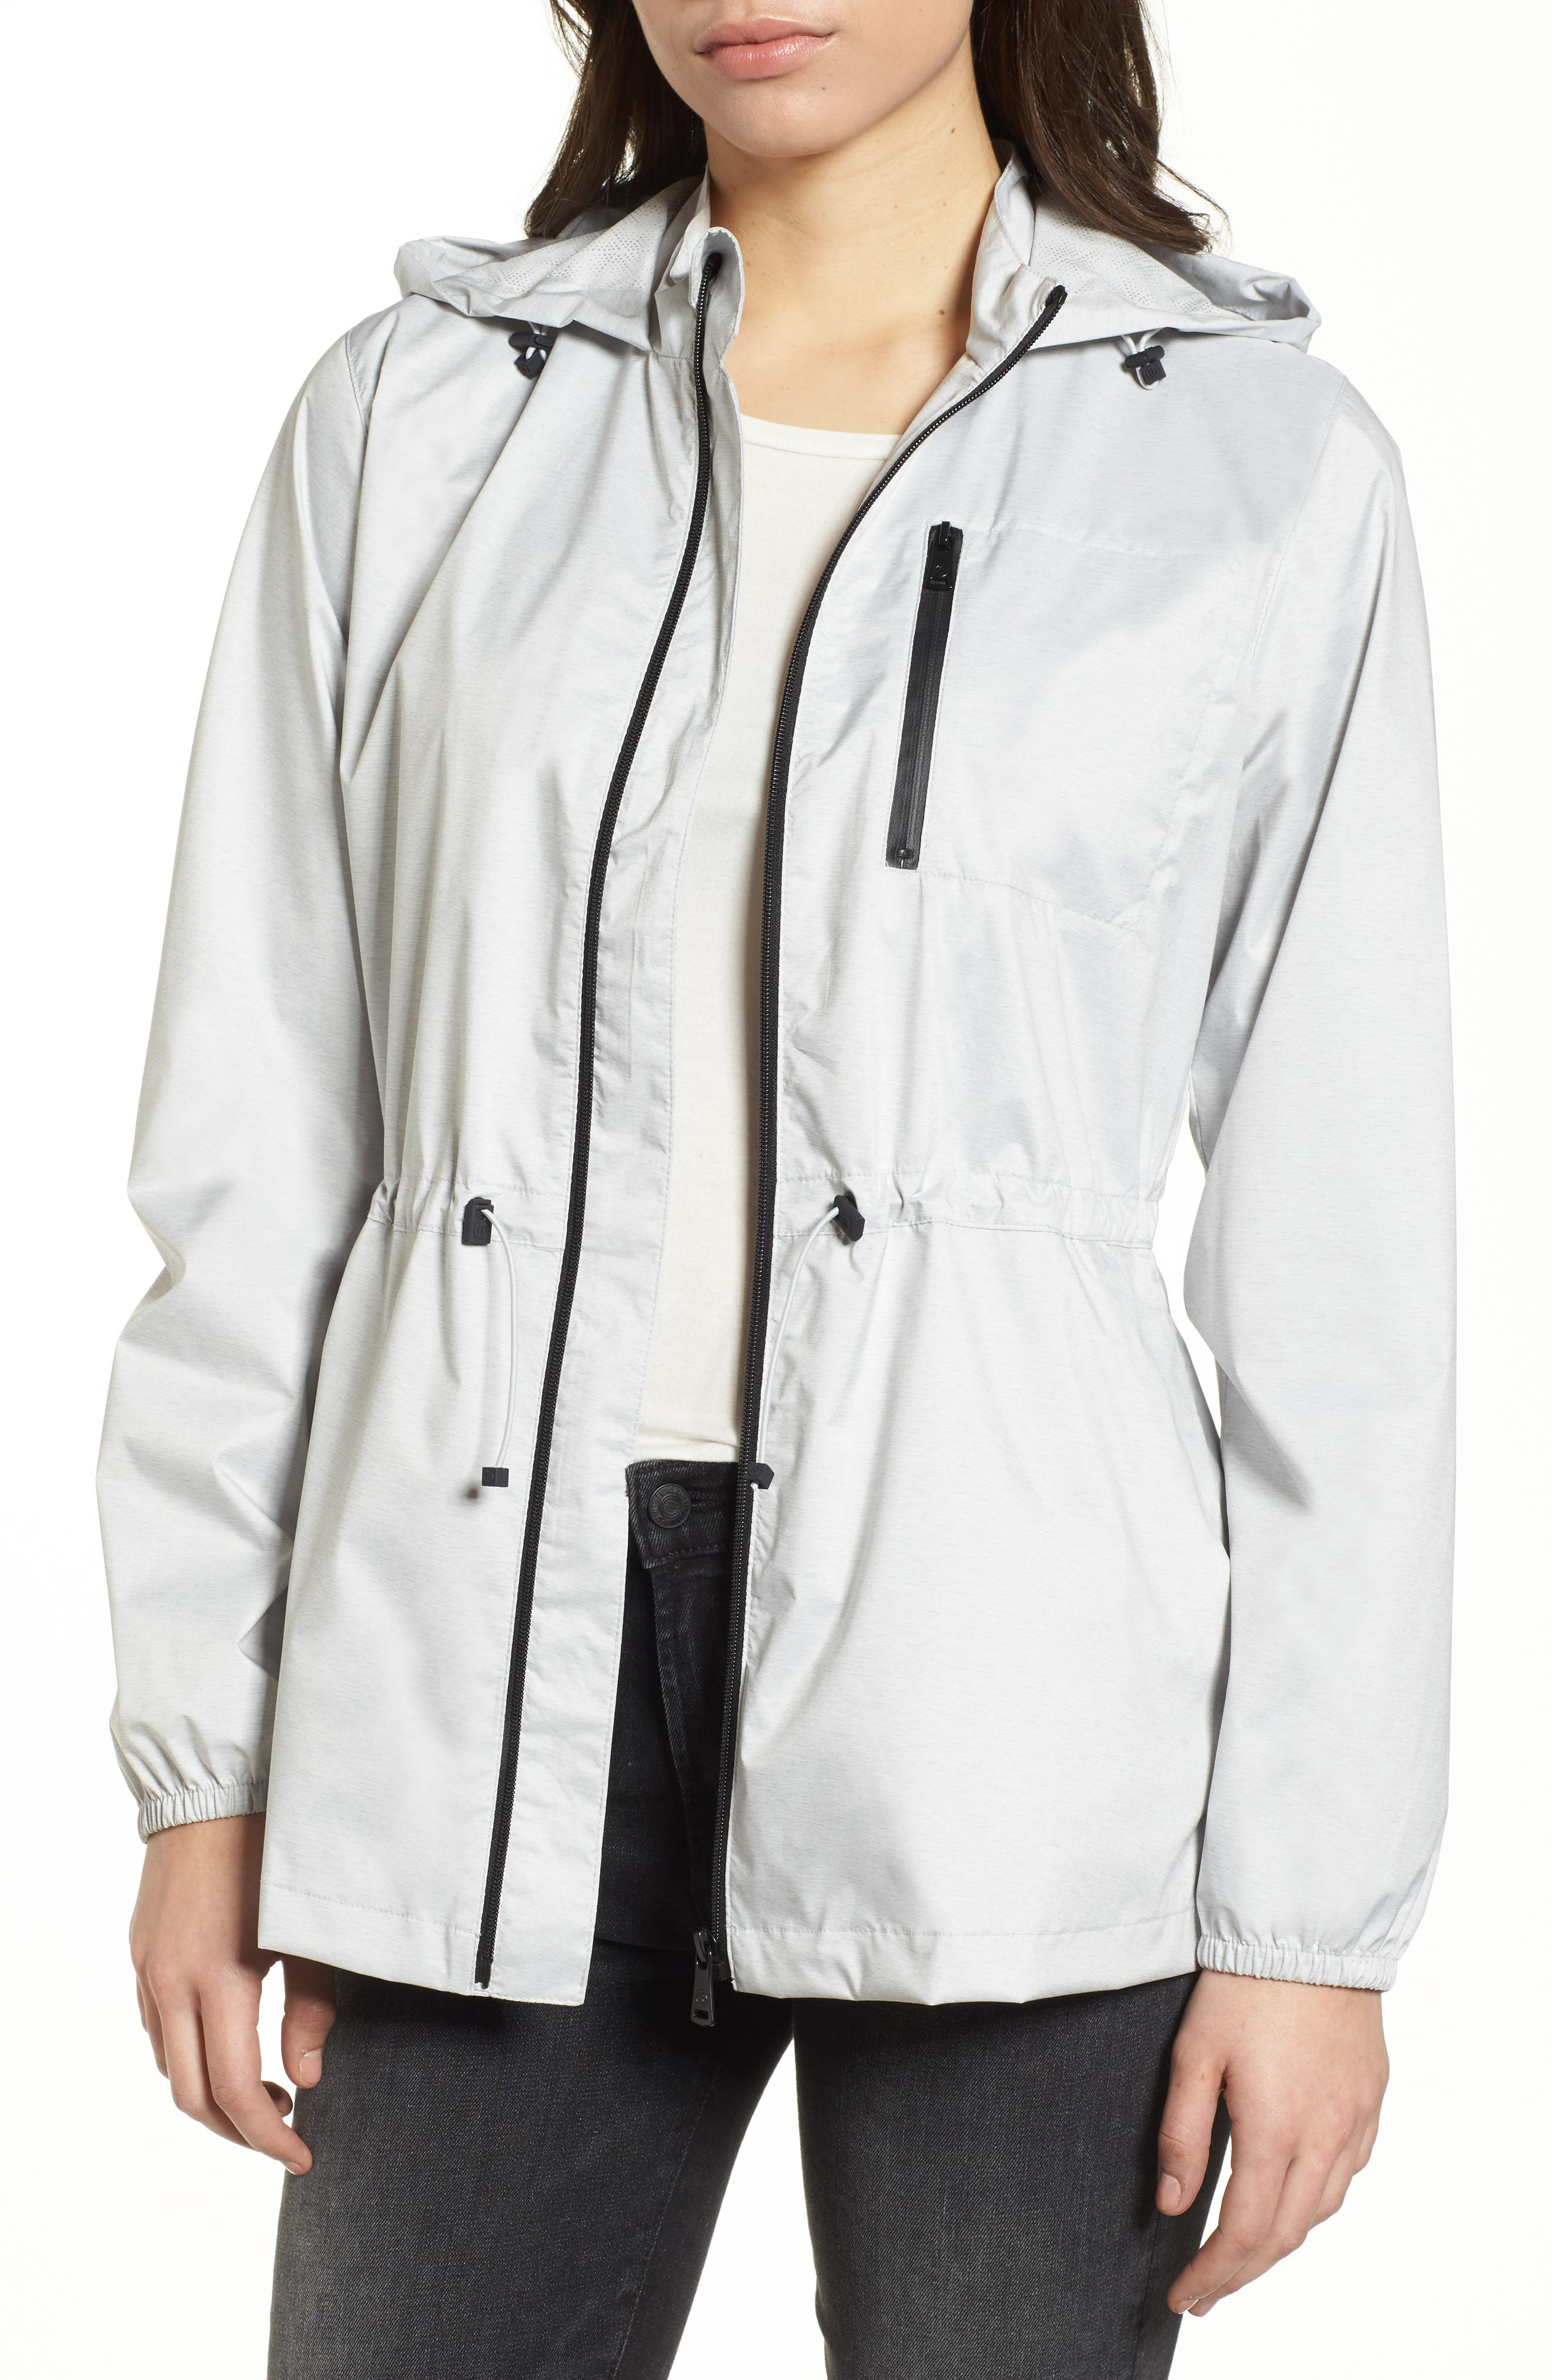 Microbreathable Hooded Water Resistant Jacket,                             Main thumbnail 1, color,                             073